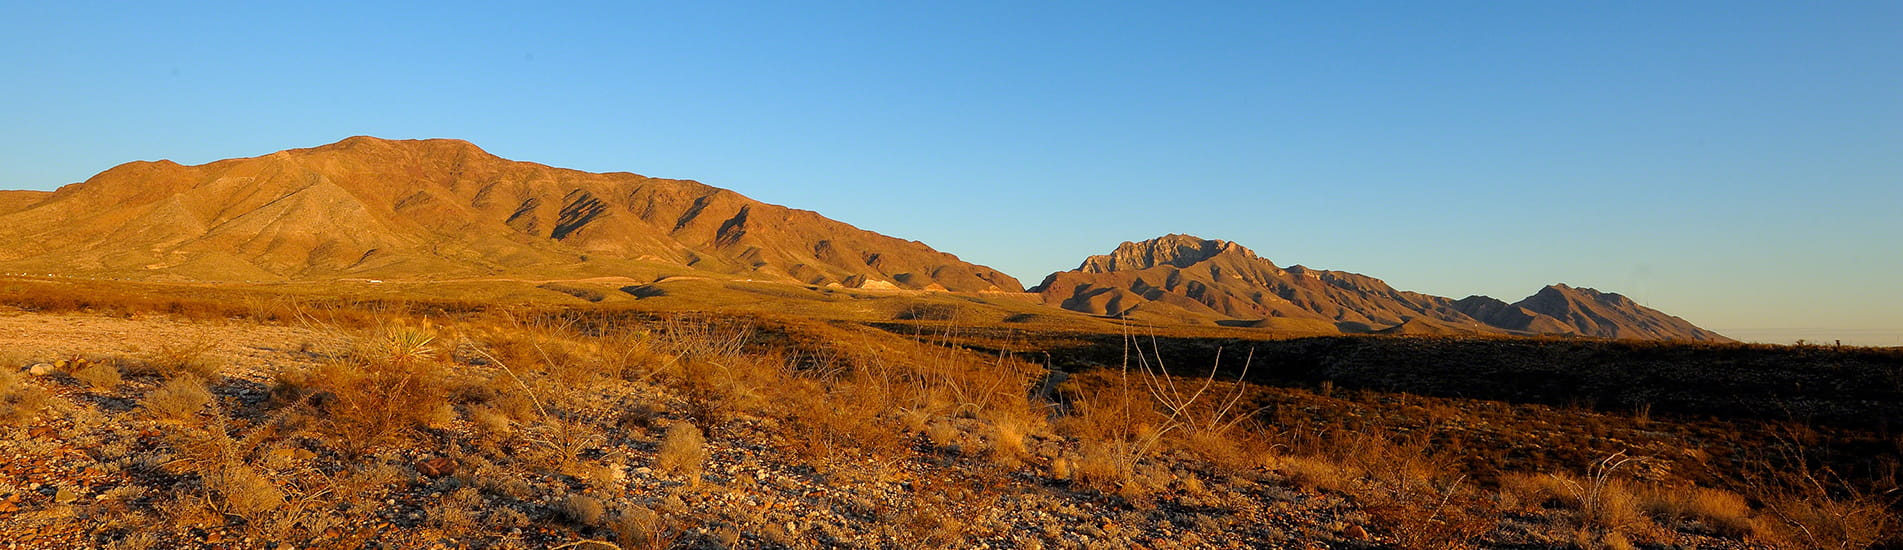 Dry desert vegetation in front of a mountain range and blue sky.